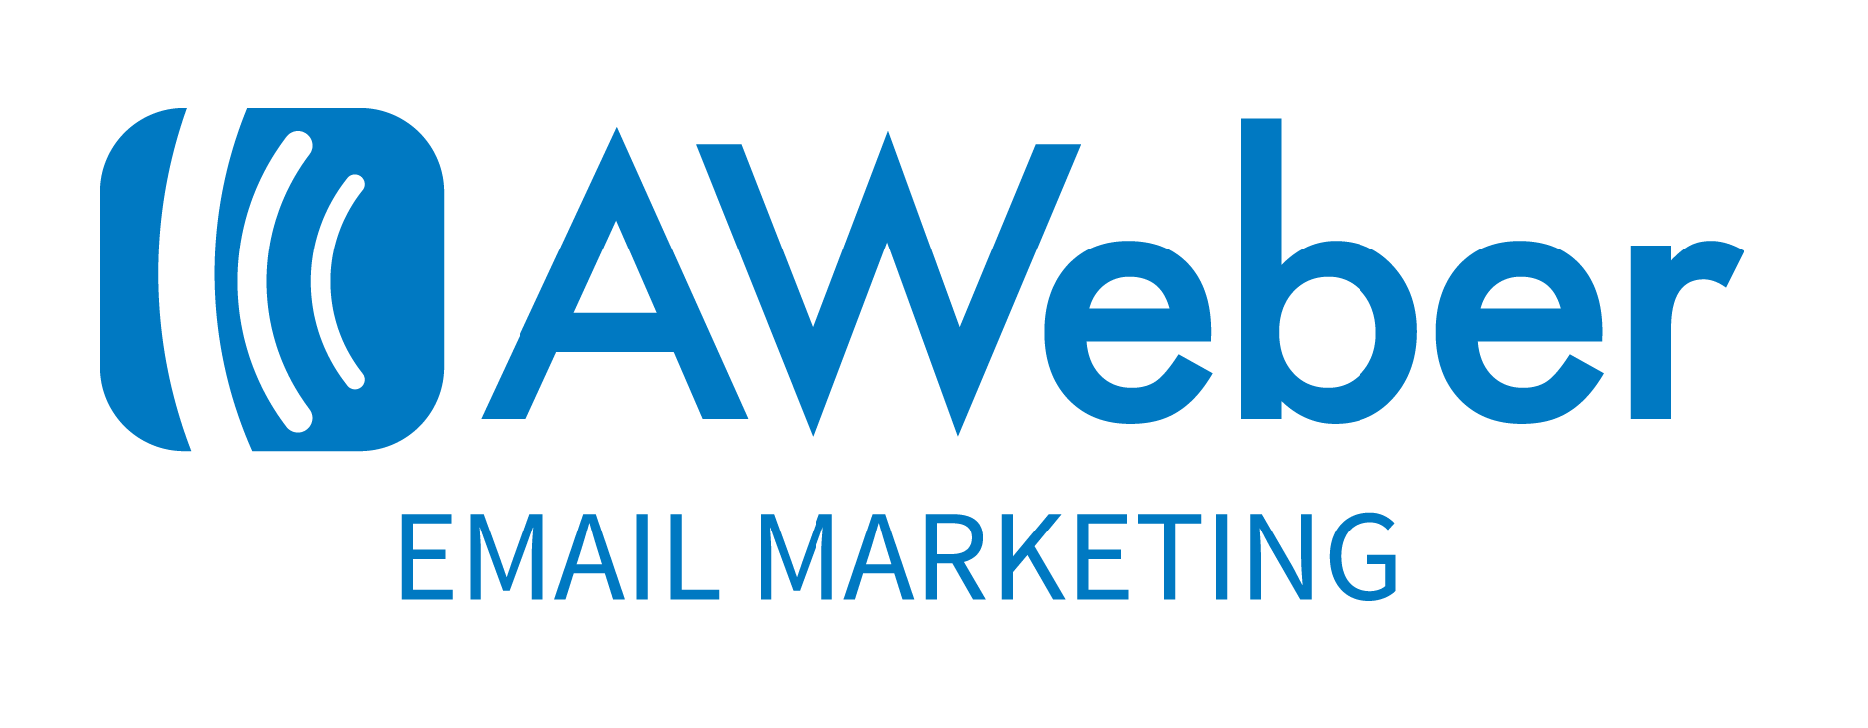 2019 Email Marketing Software